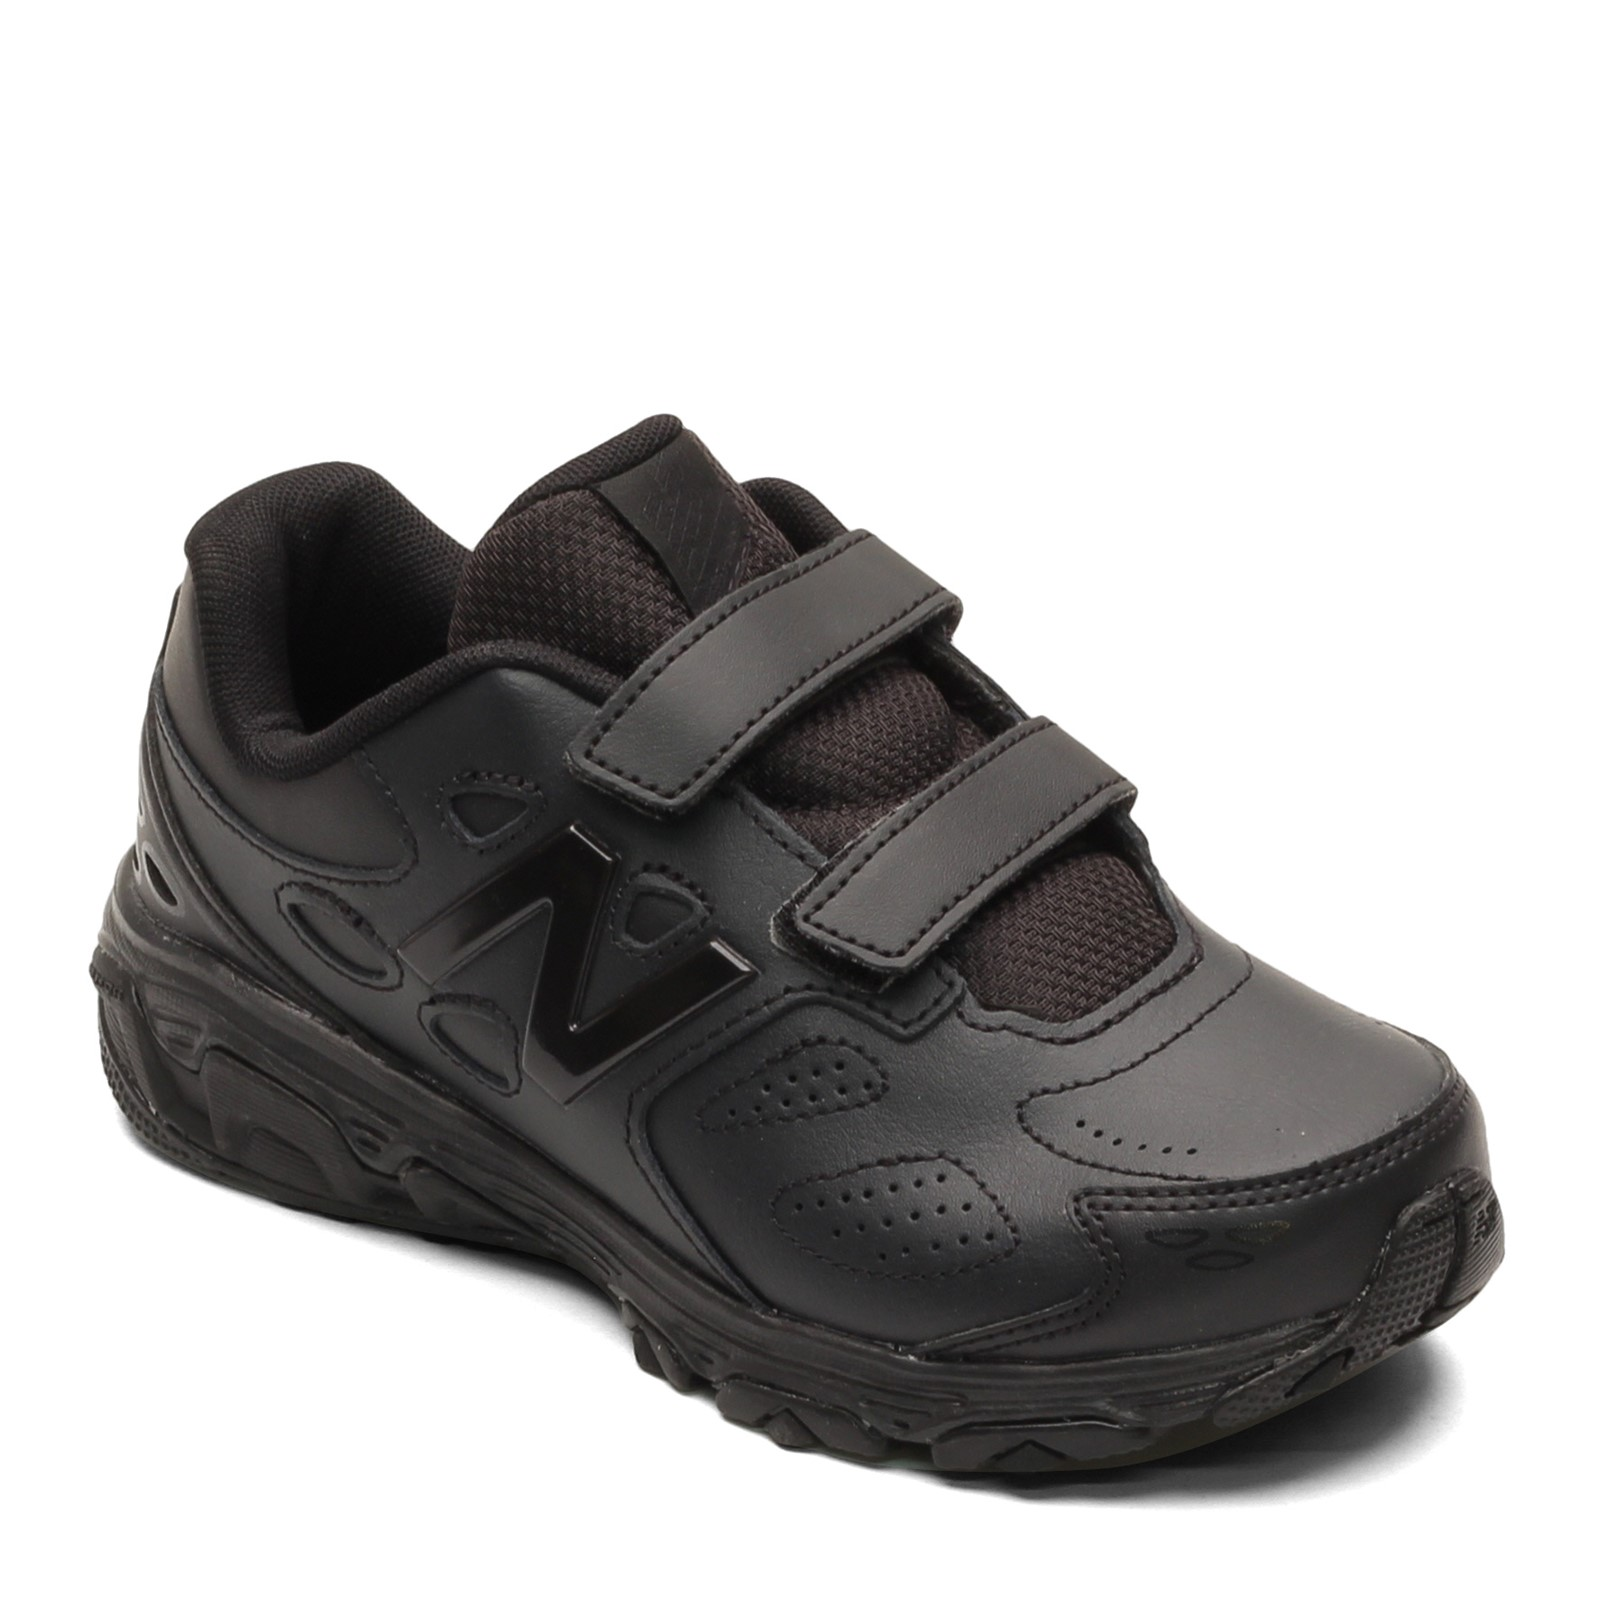 Kid's New Balance, 680 Athletic Sneaker - Little Kid